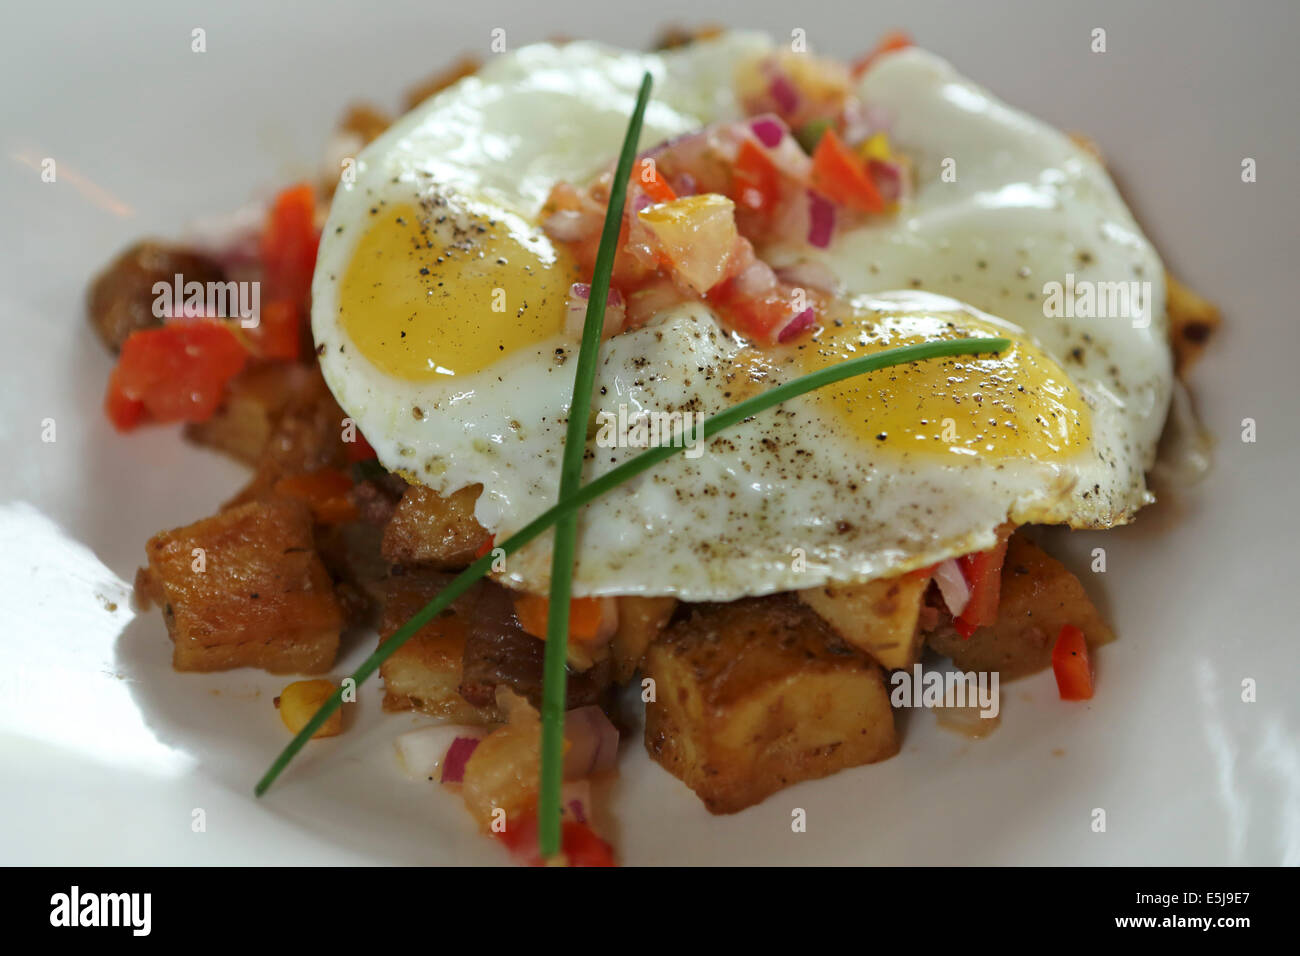 A spicy potato hash topped with two fried eggs. The dish is a popular comfort food. - Stock Image